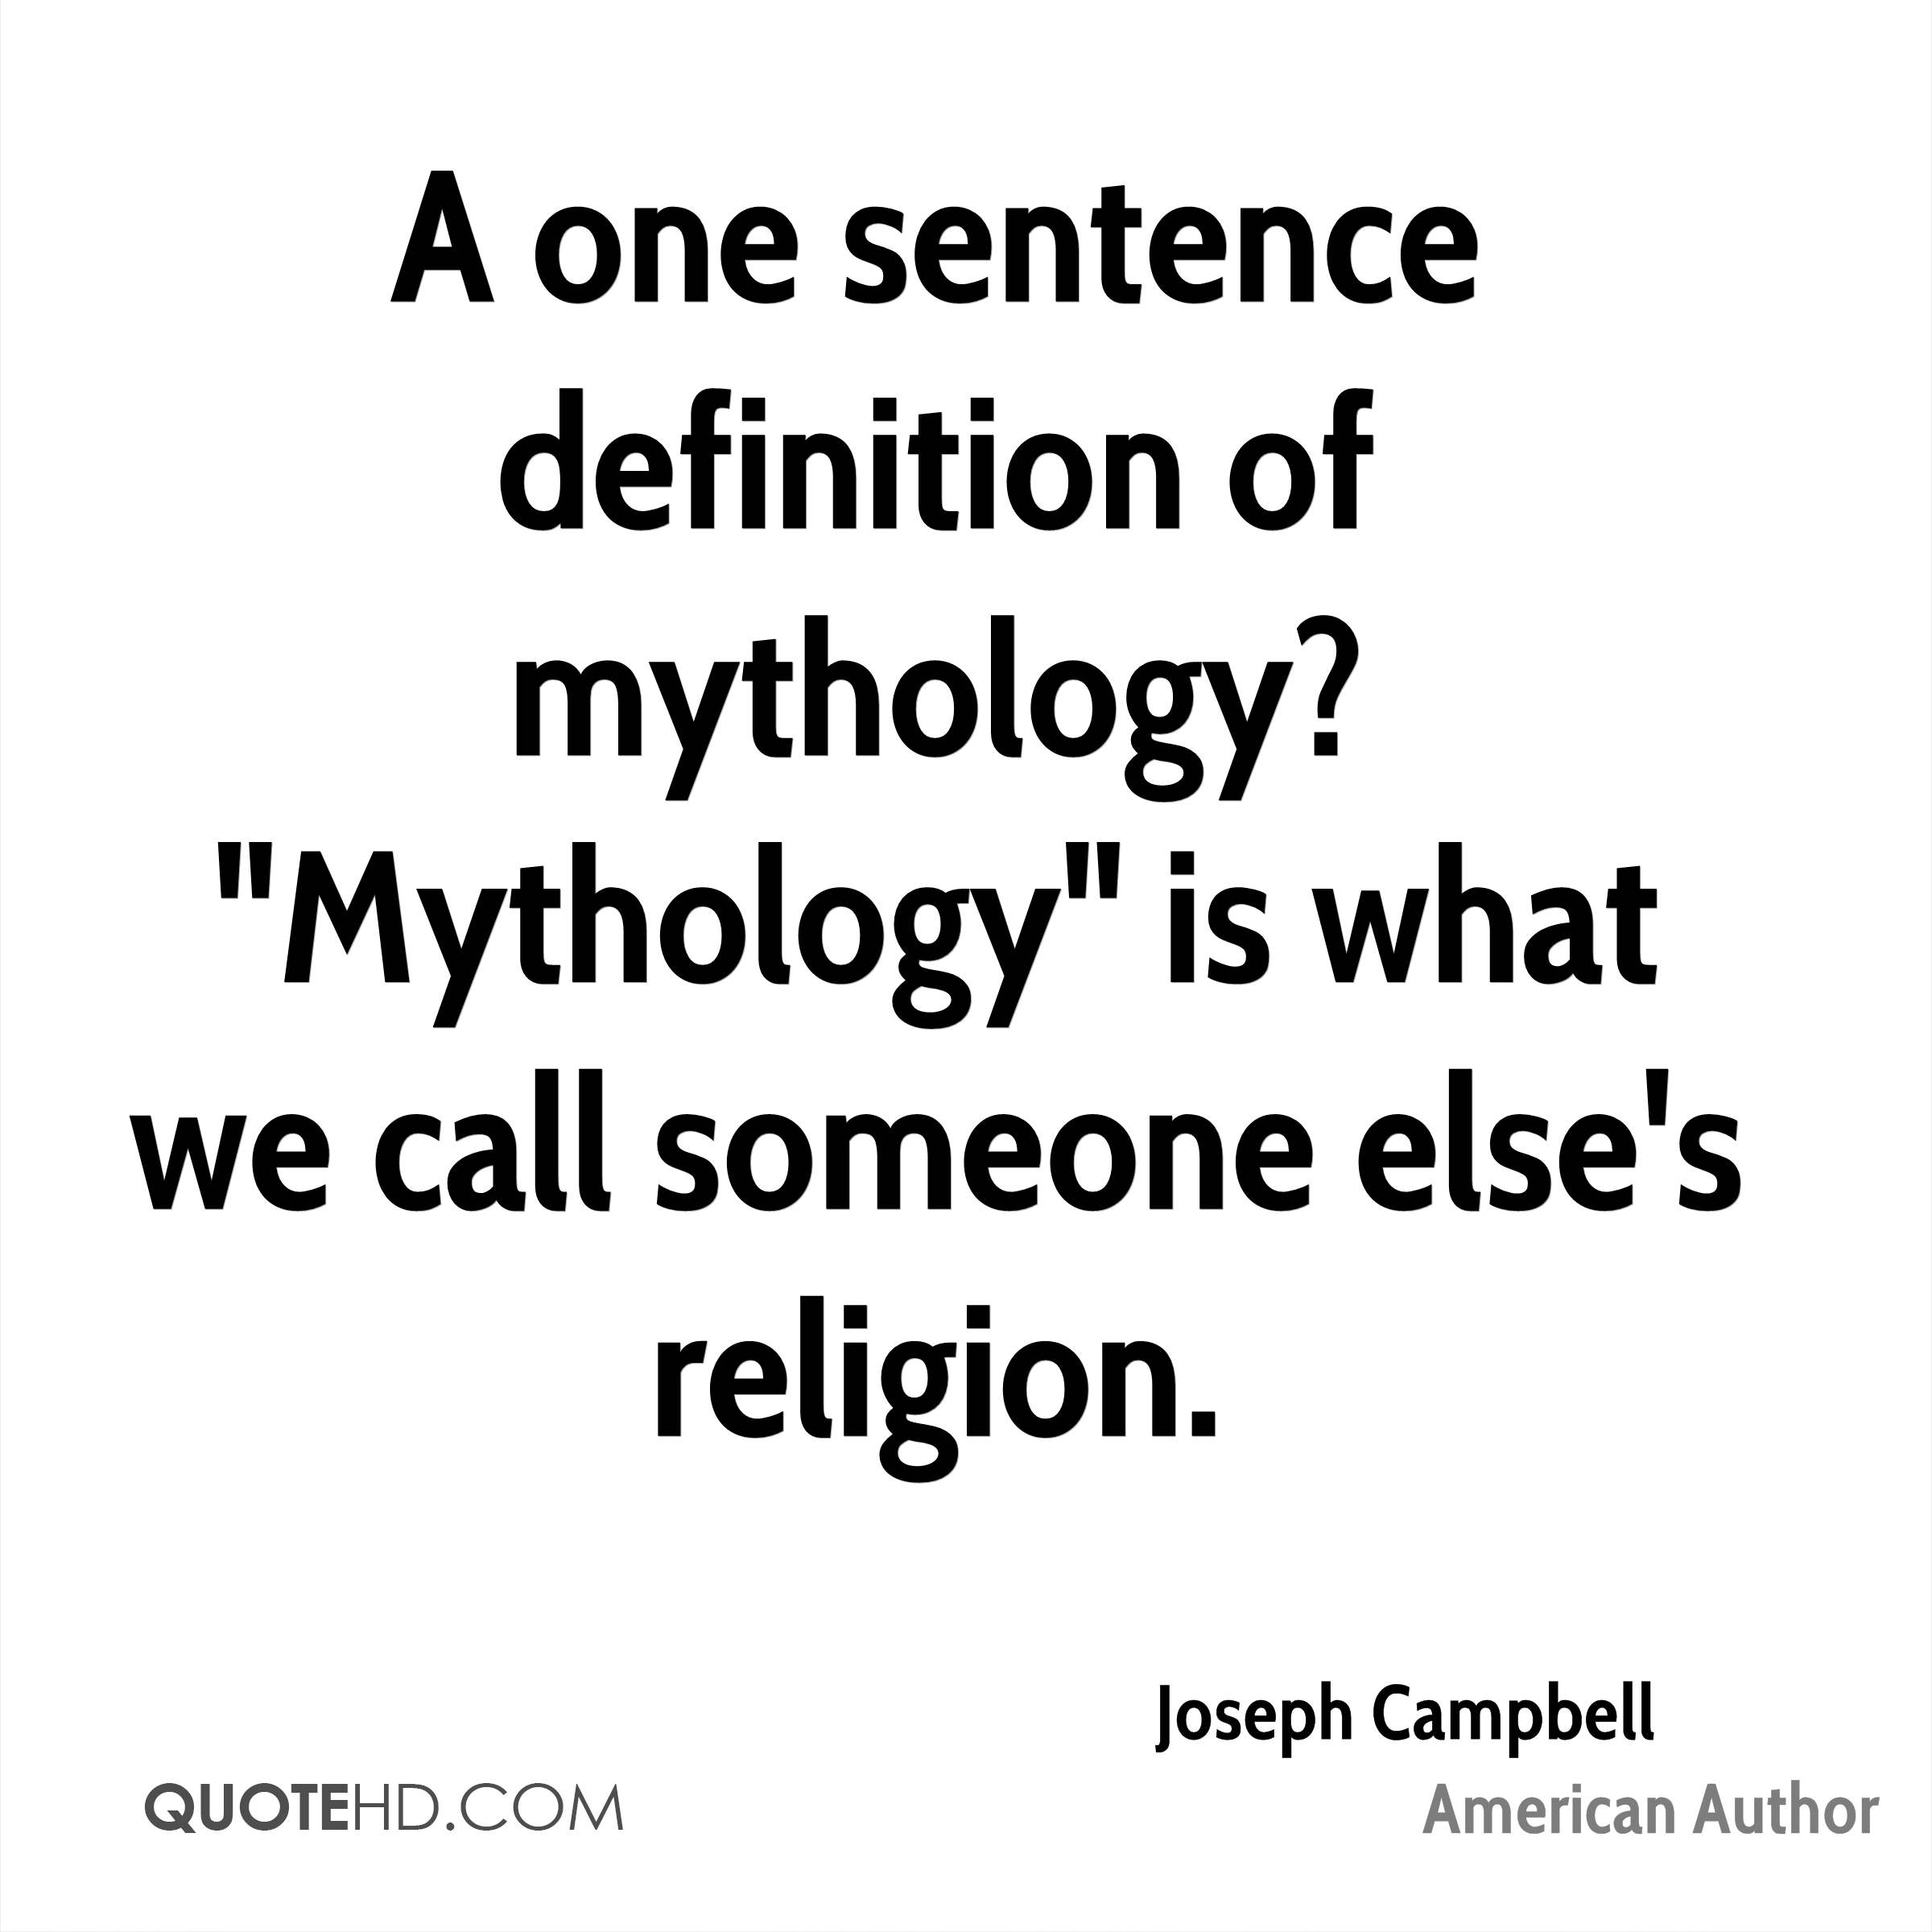 Quotes Definition Joseph Campbell Quotes  Quotehd